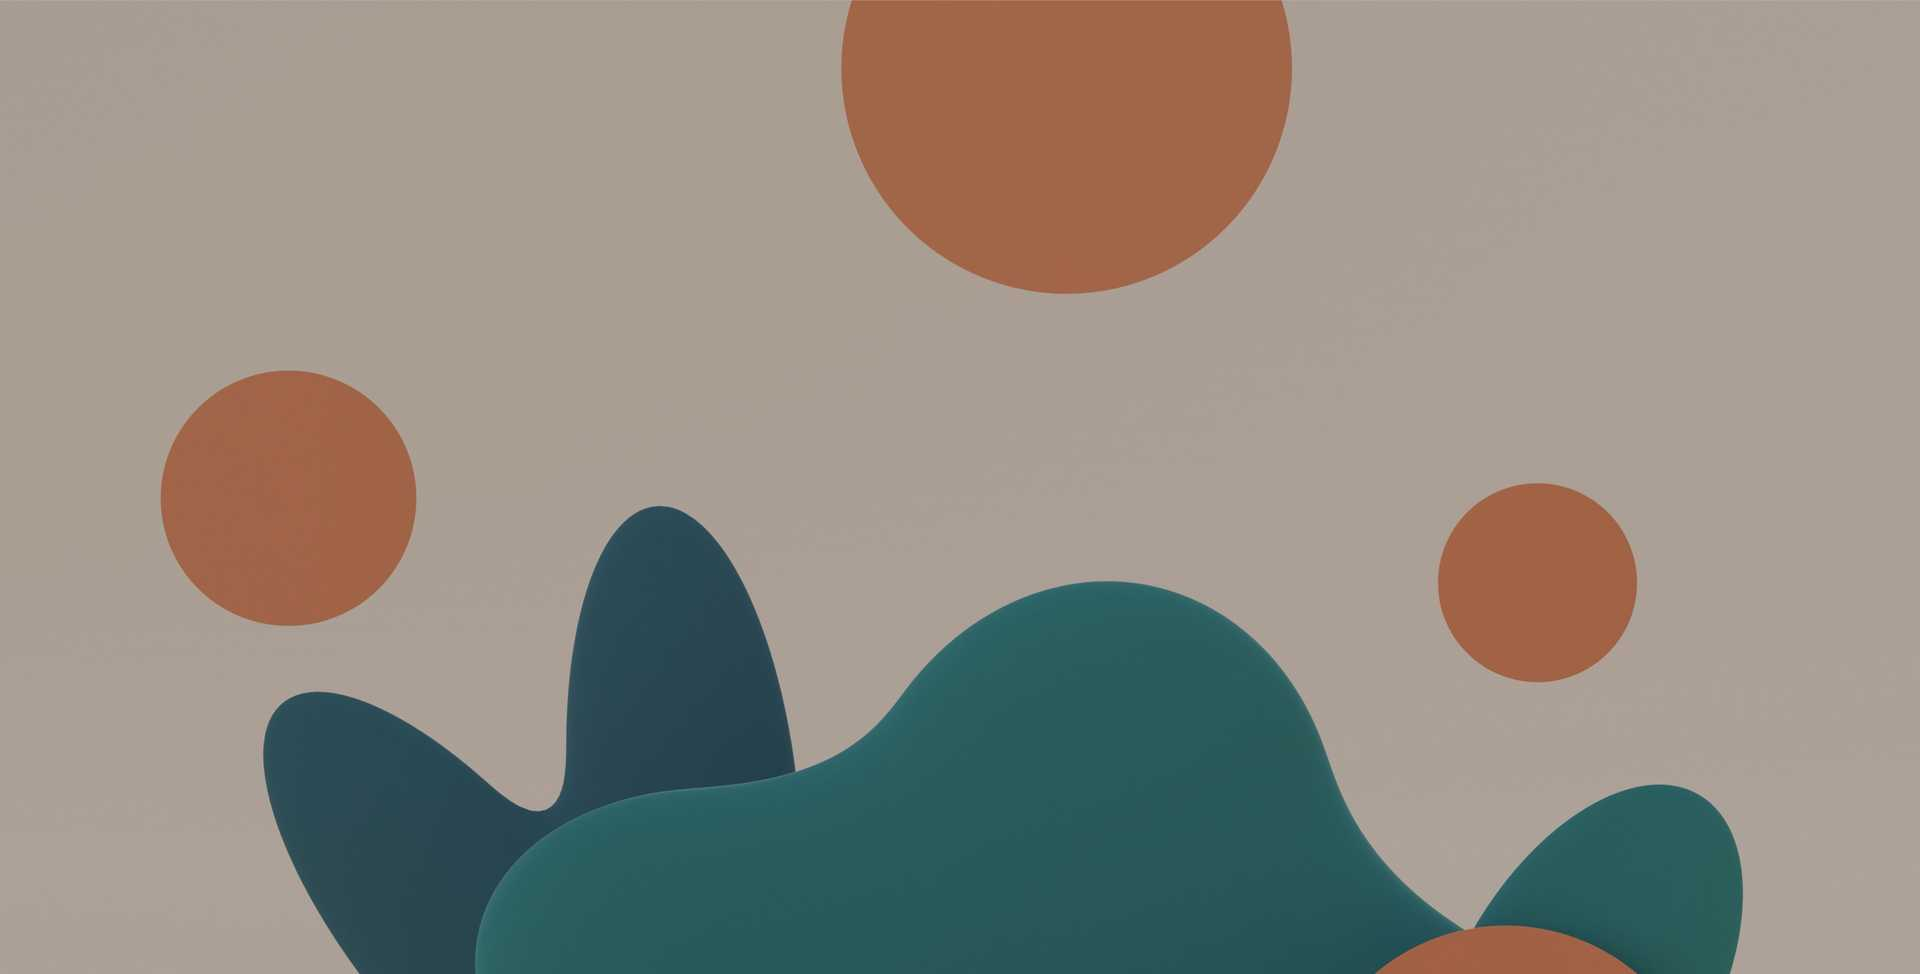 Orange circles floating above a green oblong shape resembling a mountain, against a beige background